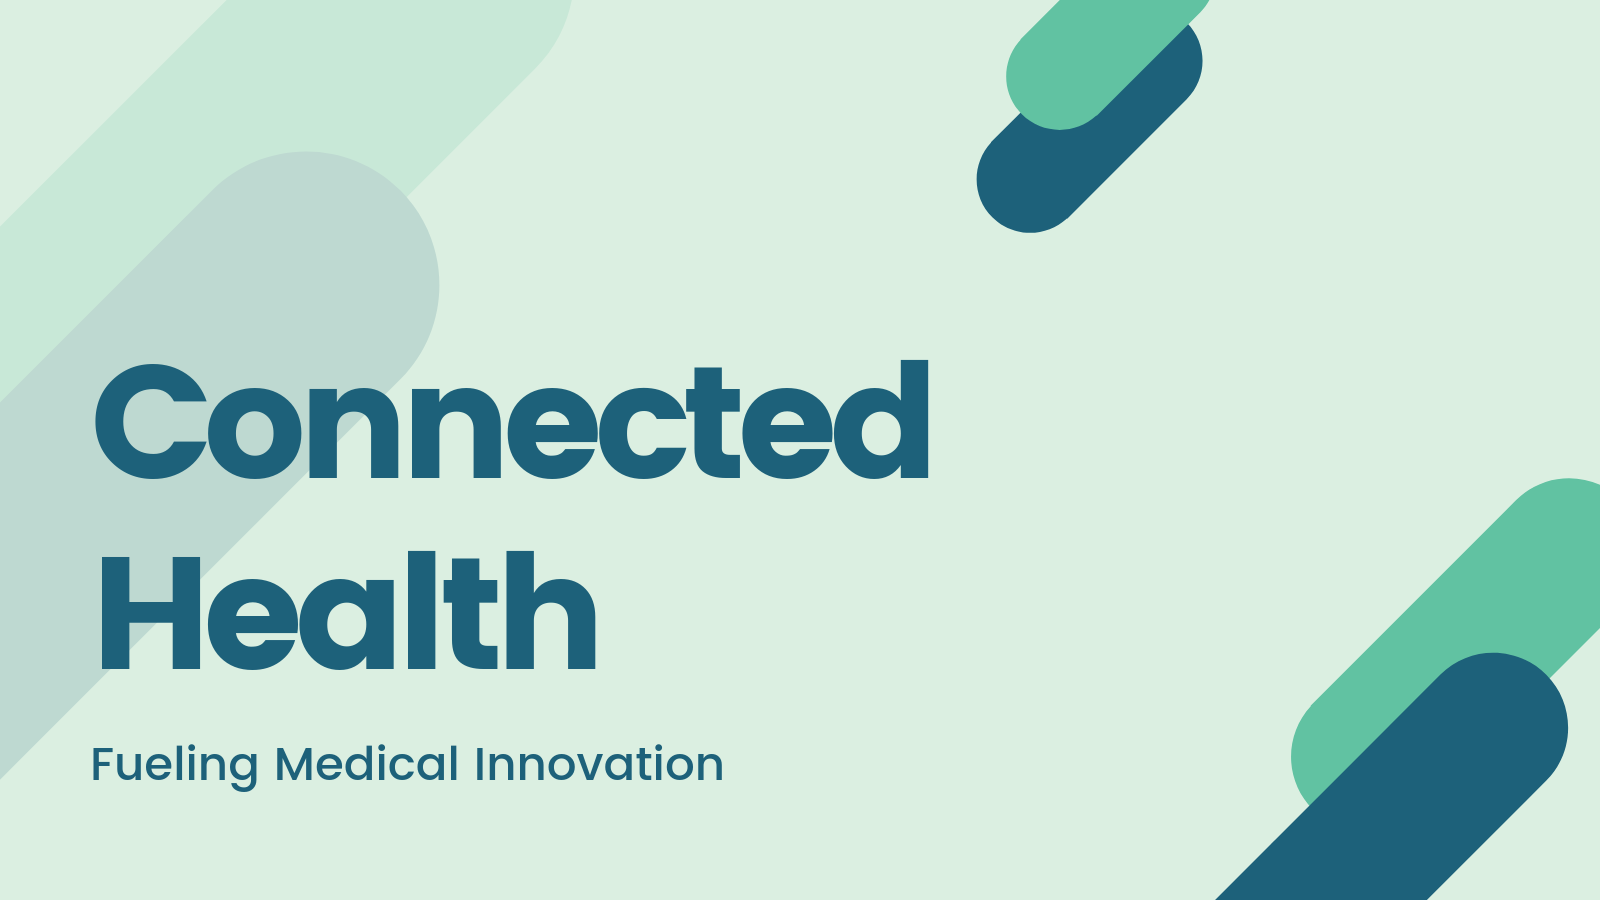 Our Focus is Fueling Medical Innovation